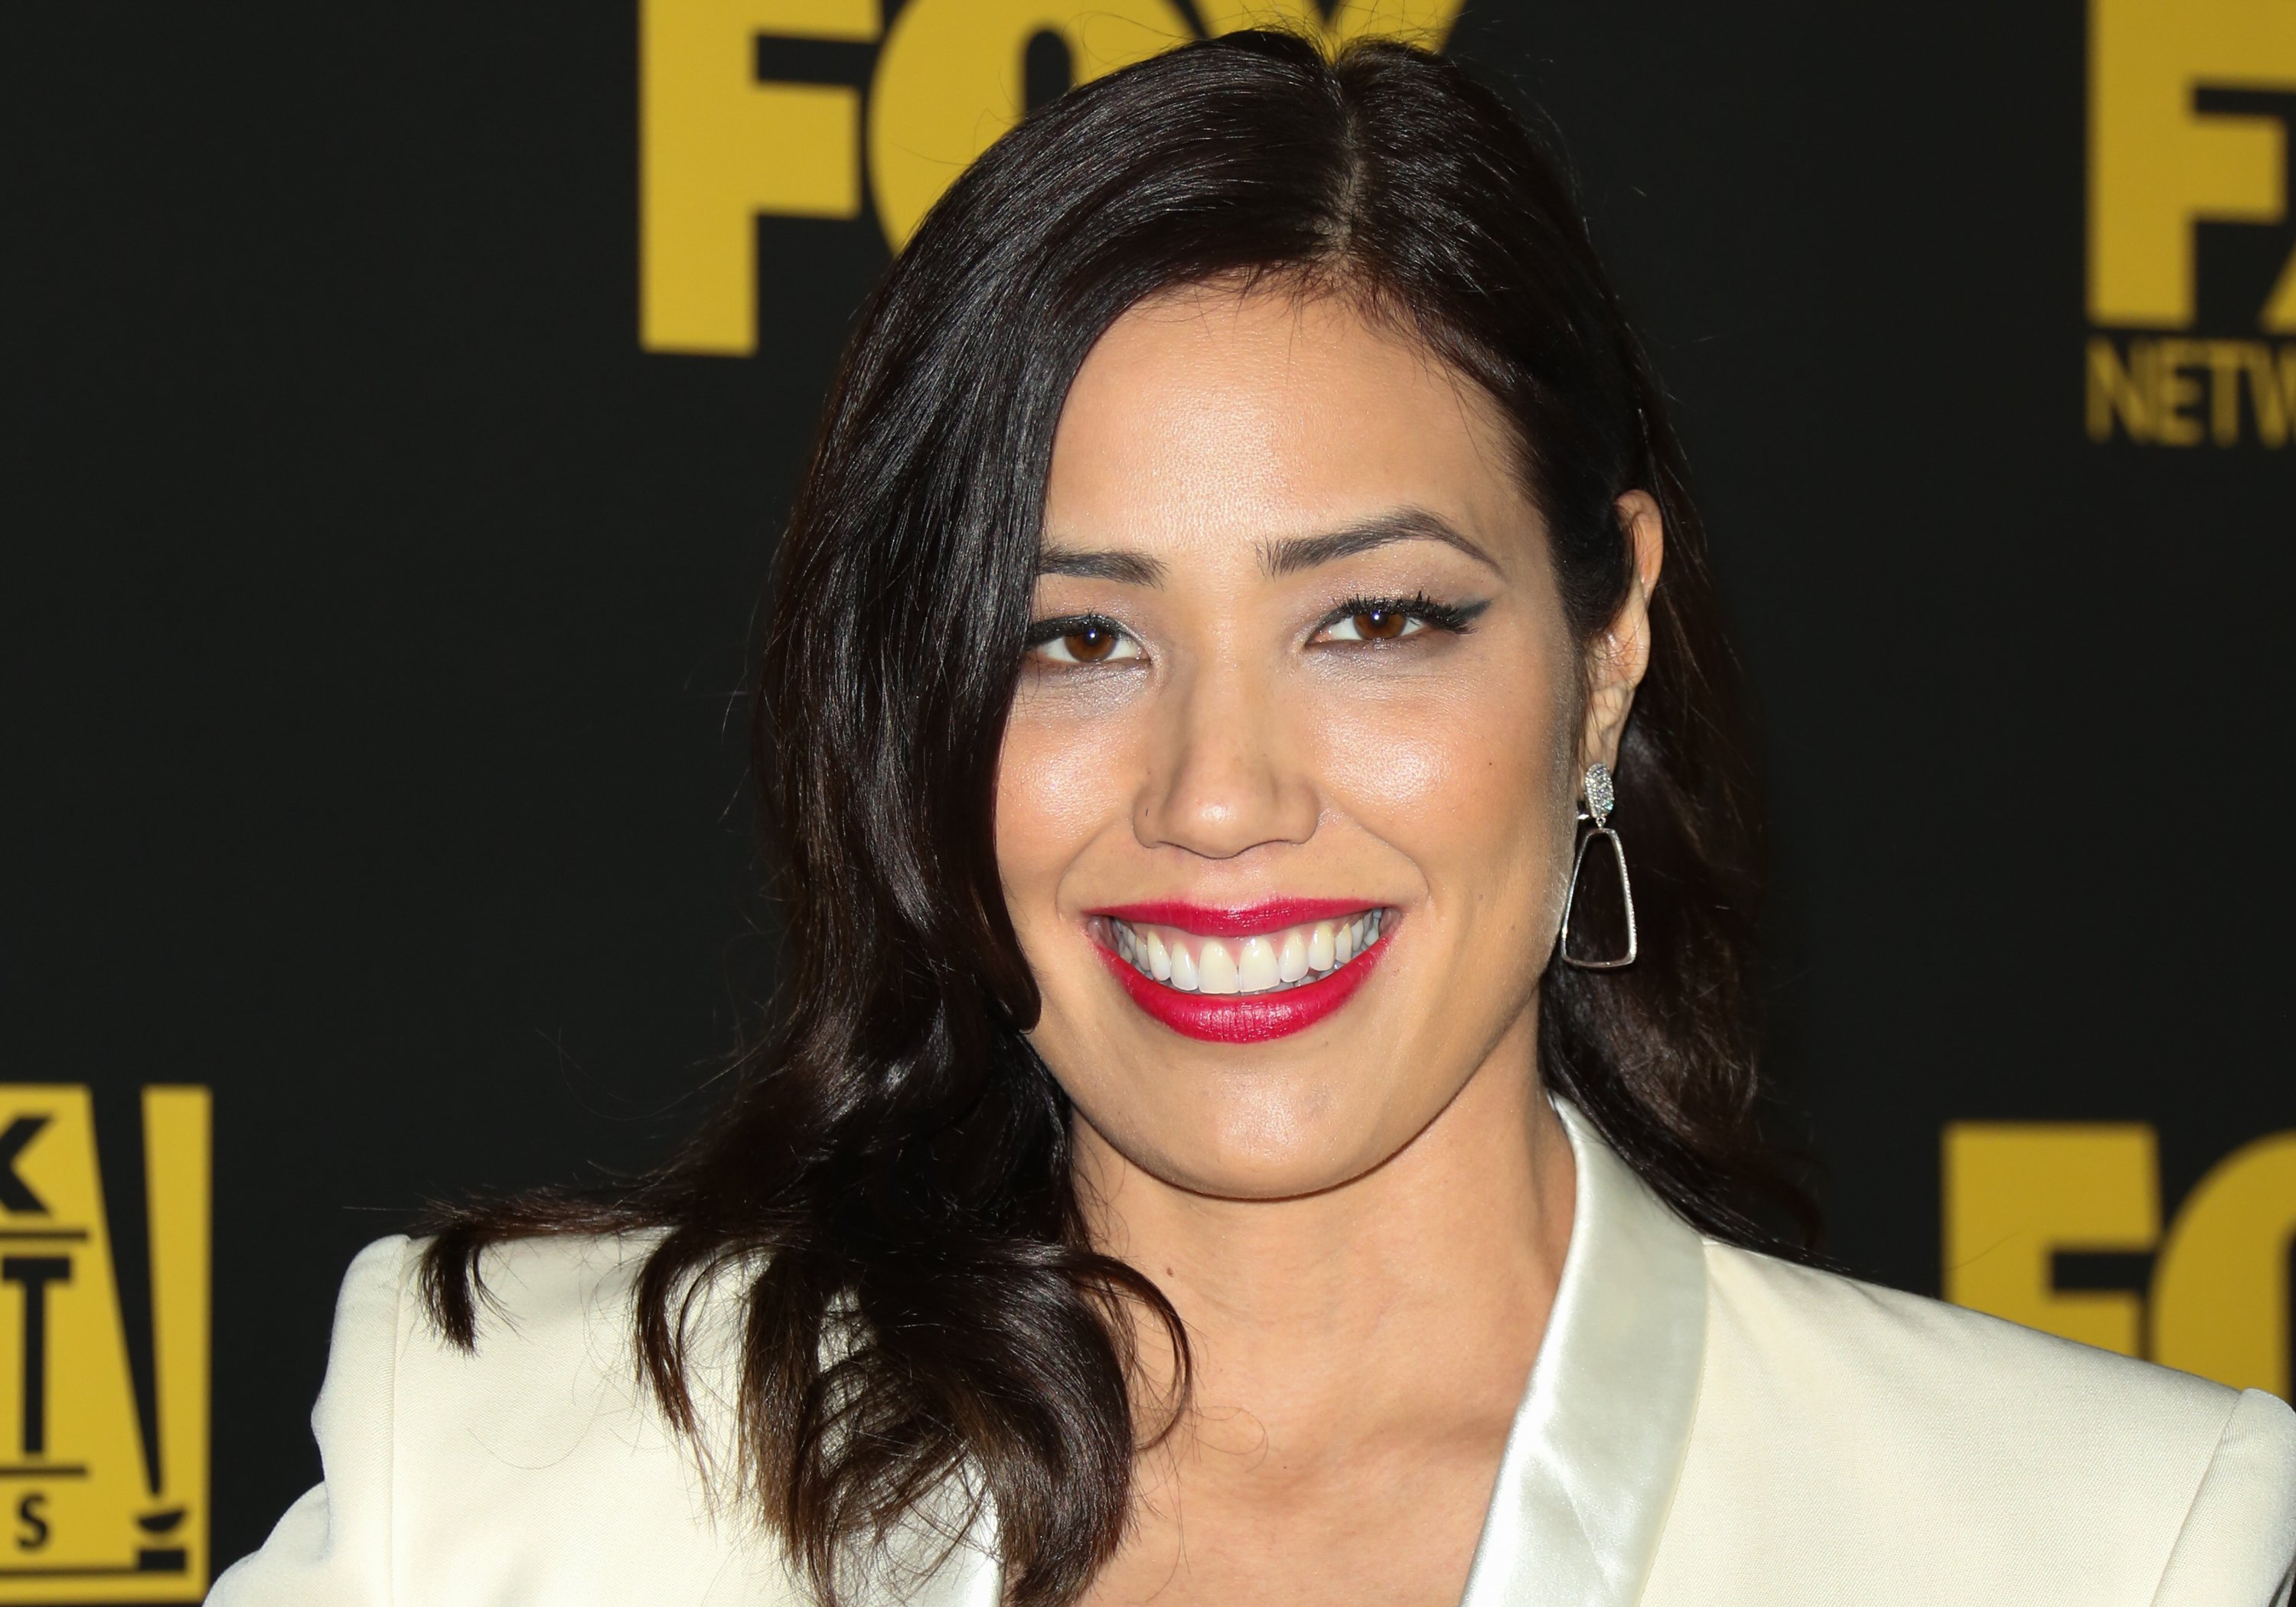 Michaela Conlin attends the Fox and FX's 2016 Golden Globe Awards Party on January 10, 2016, in Beverly Hills, California. | Source: Getty Images.